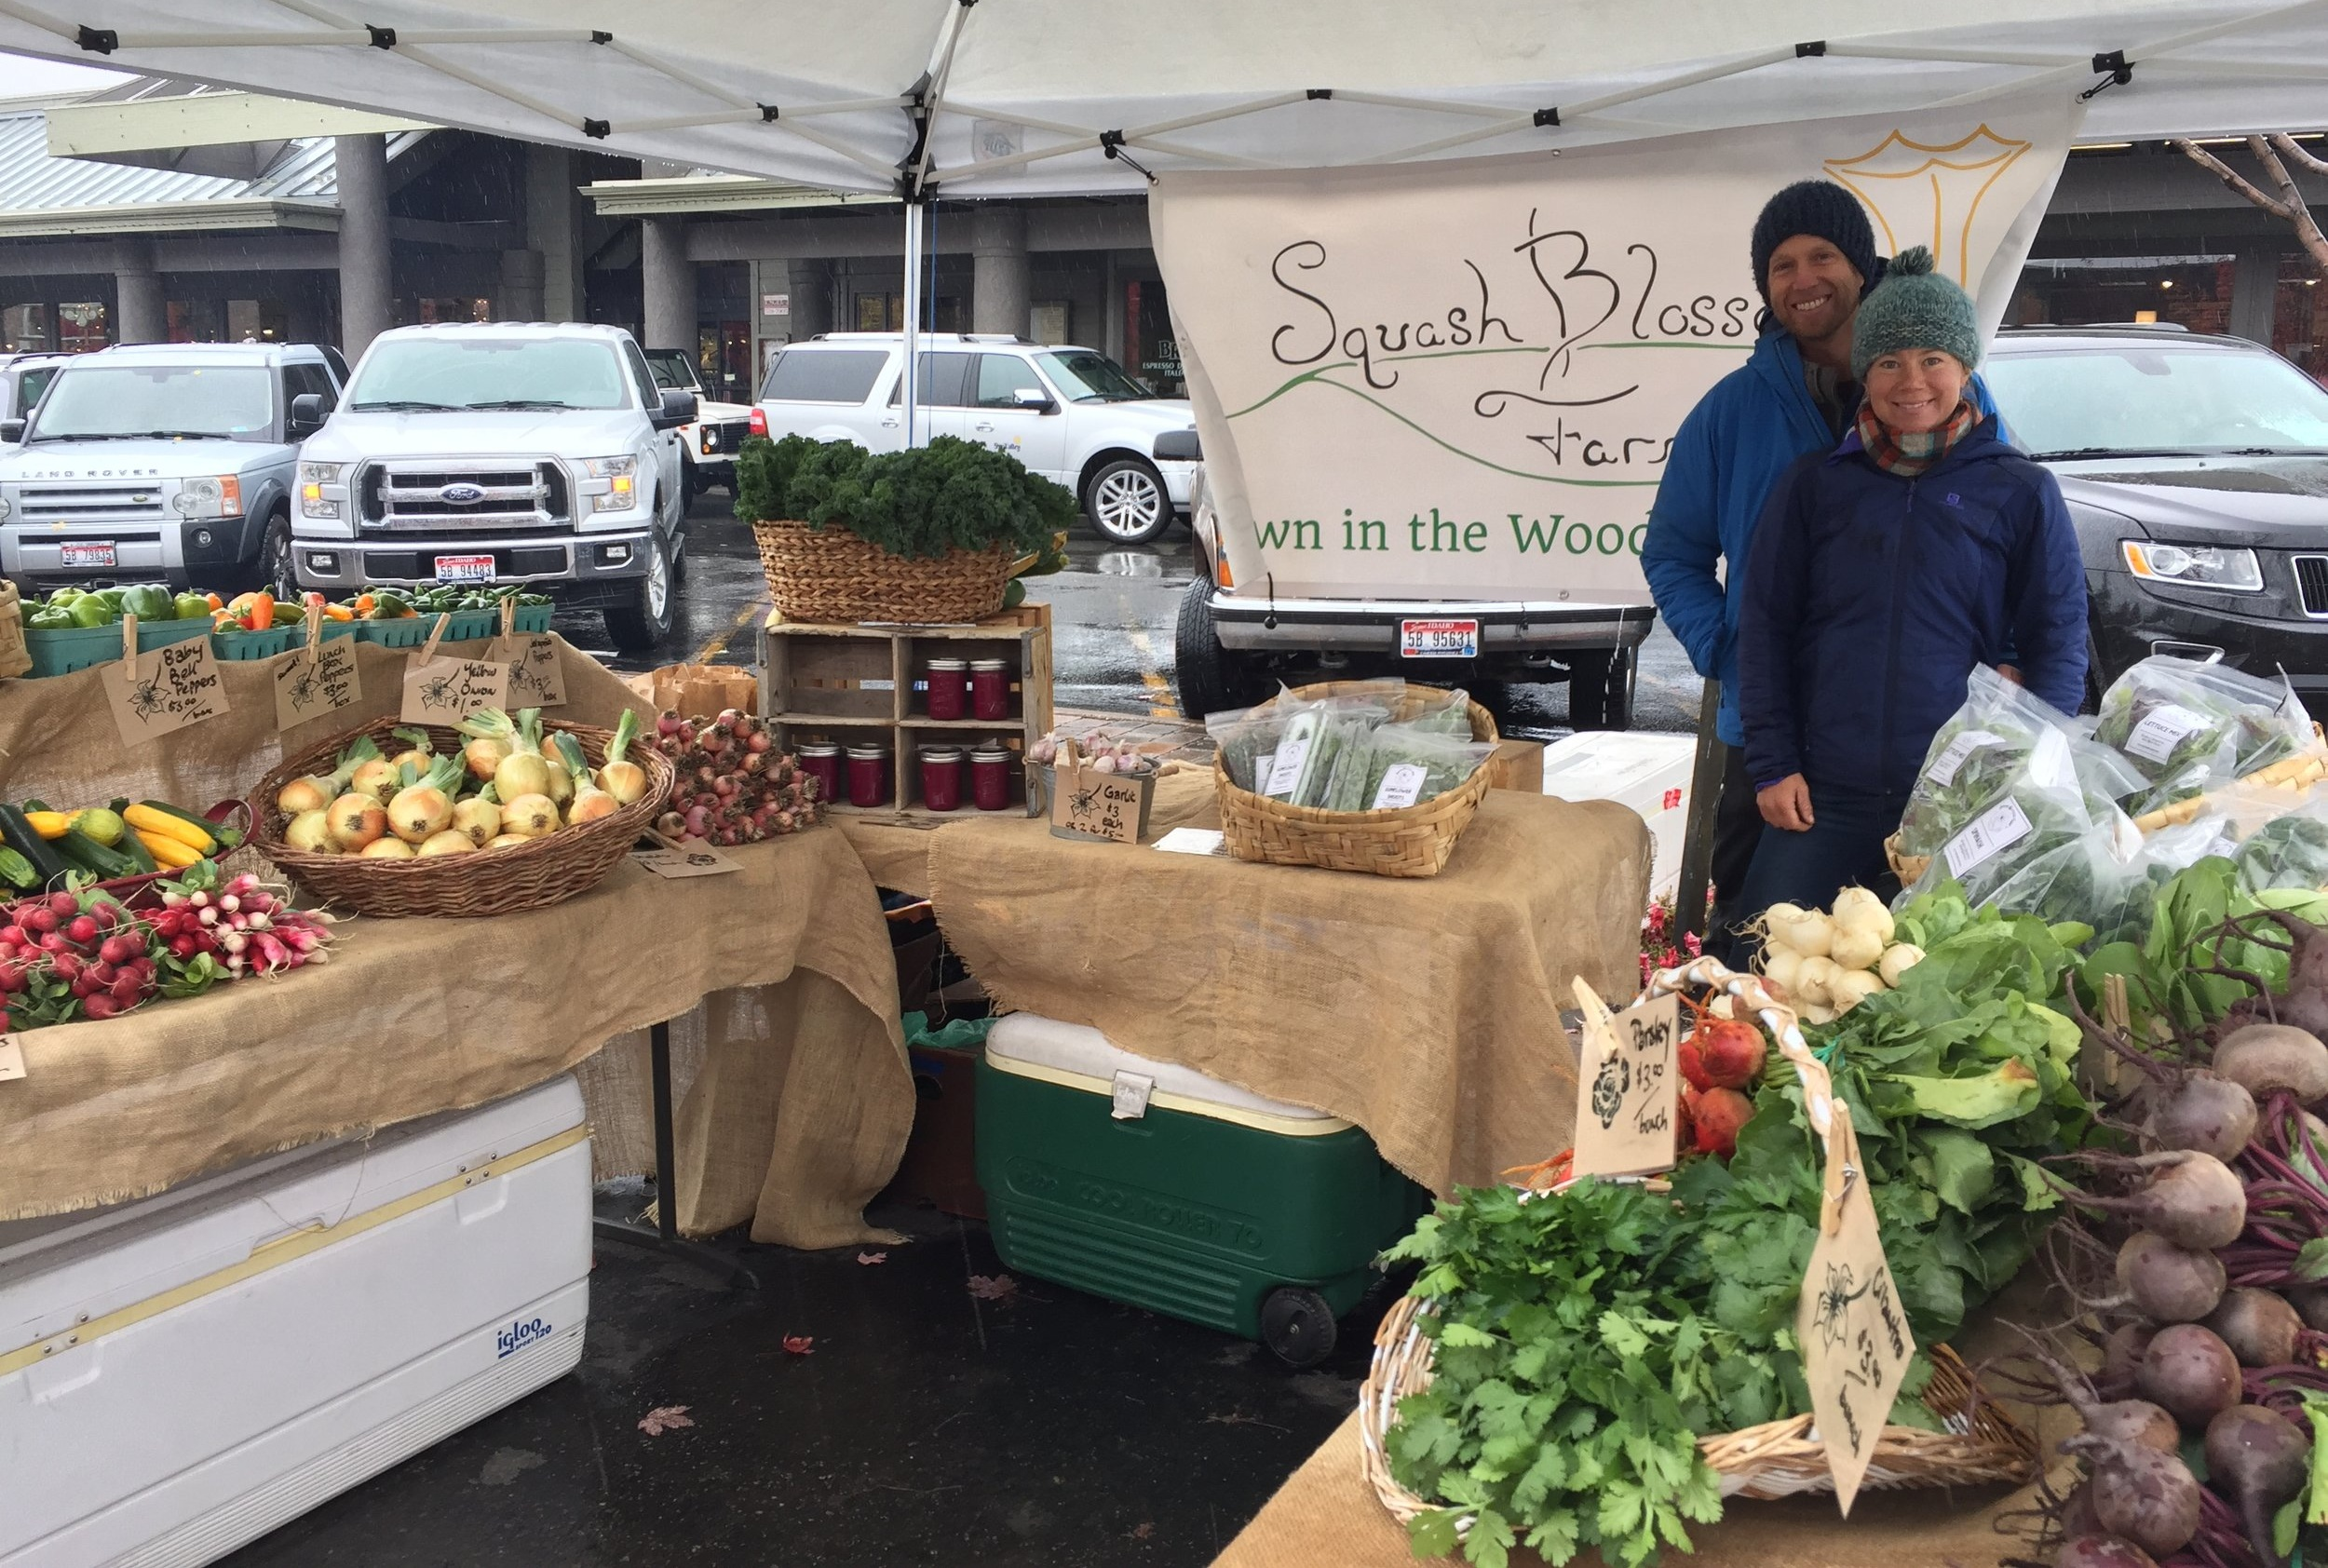 Find us at theKetchum Farmer's Market! - The Farmers Market is our favorite way to interface with our customers and pass fresh, delicious produce directly from farmer to consumer.Tuesdays 2-6 pm / June - October http://wrfarmersmarket.org/ketchum-market/